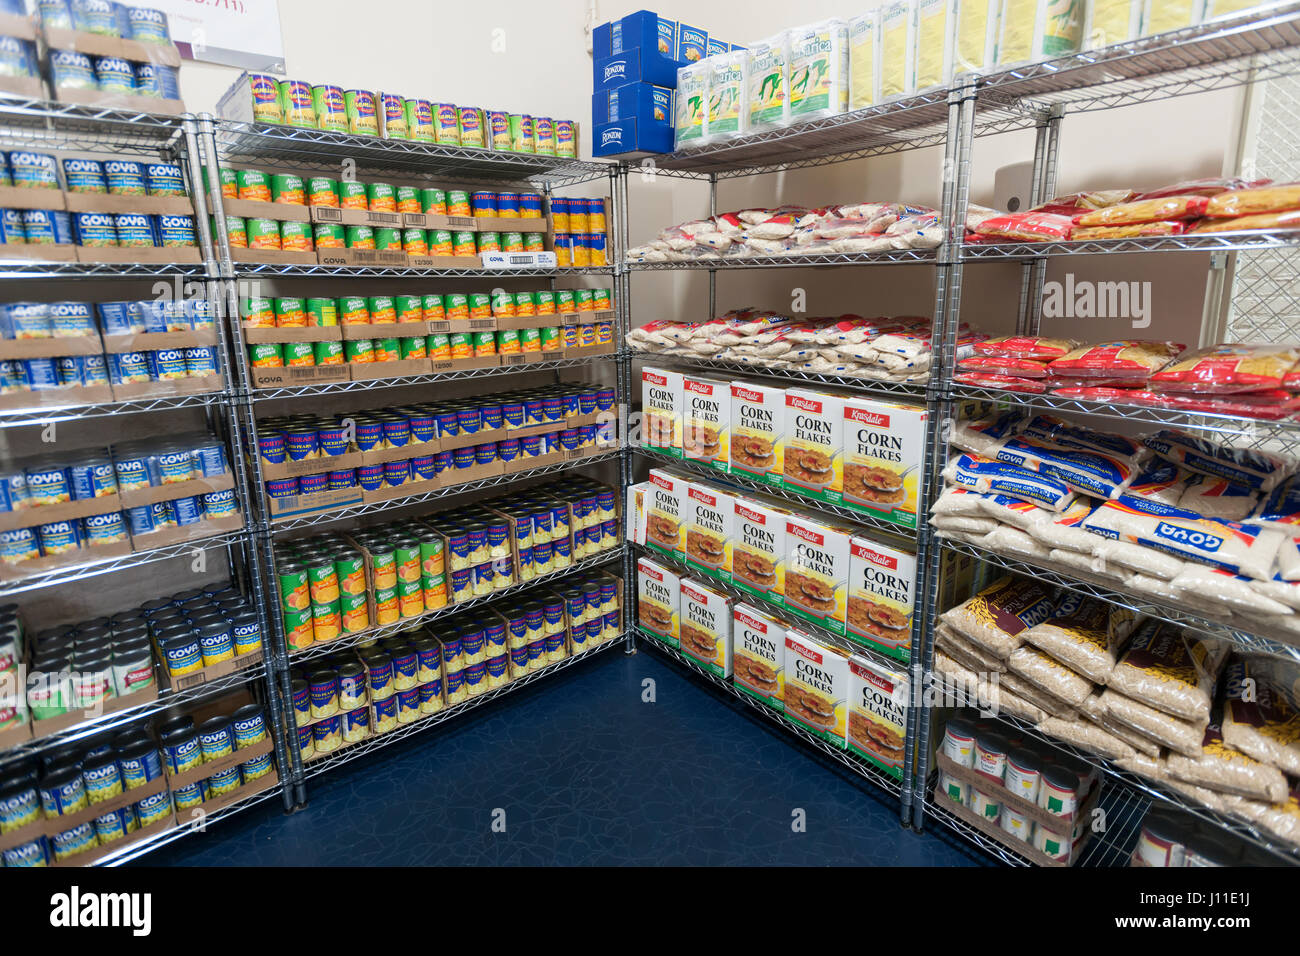 Catholic Charities Bronx Food Distribution Center in New York on Holy Thursday, April 13, 2017. The distribution - Stock Image